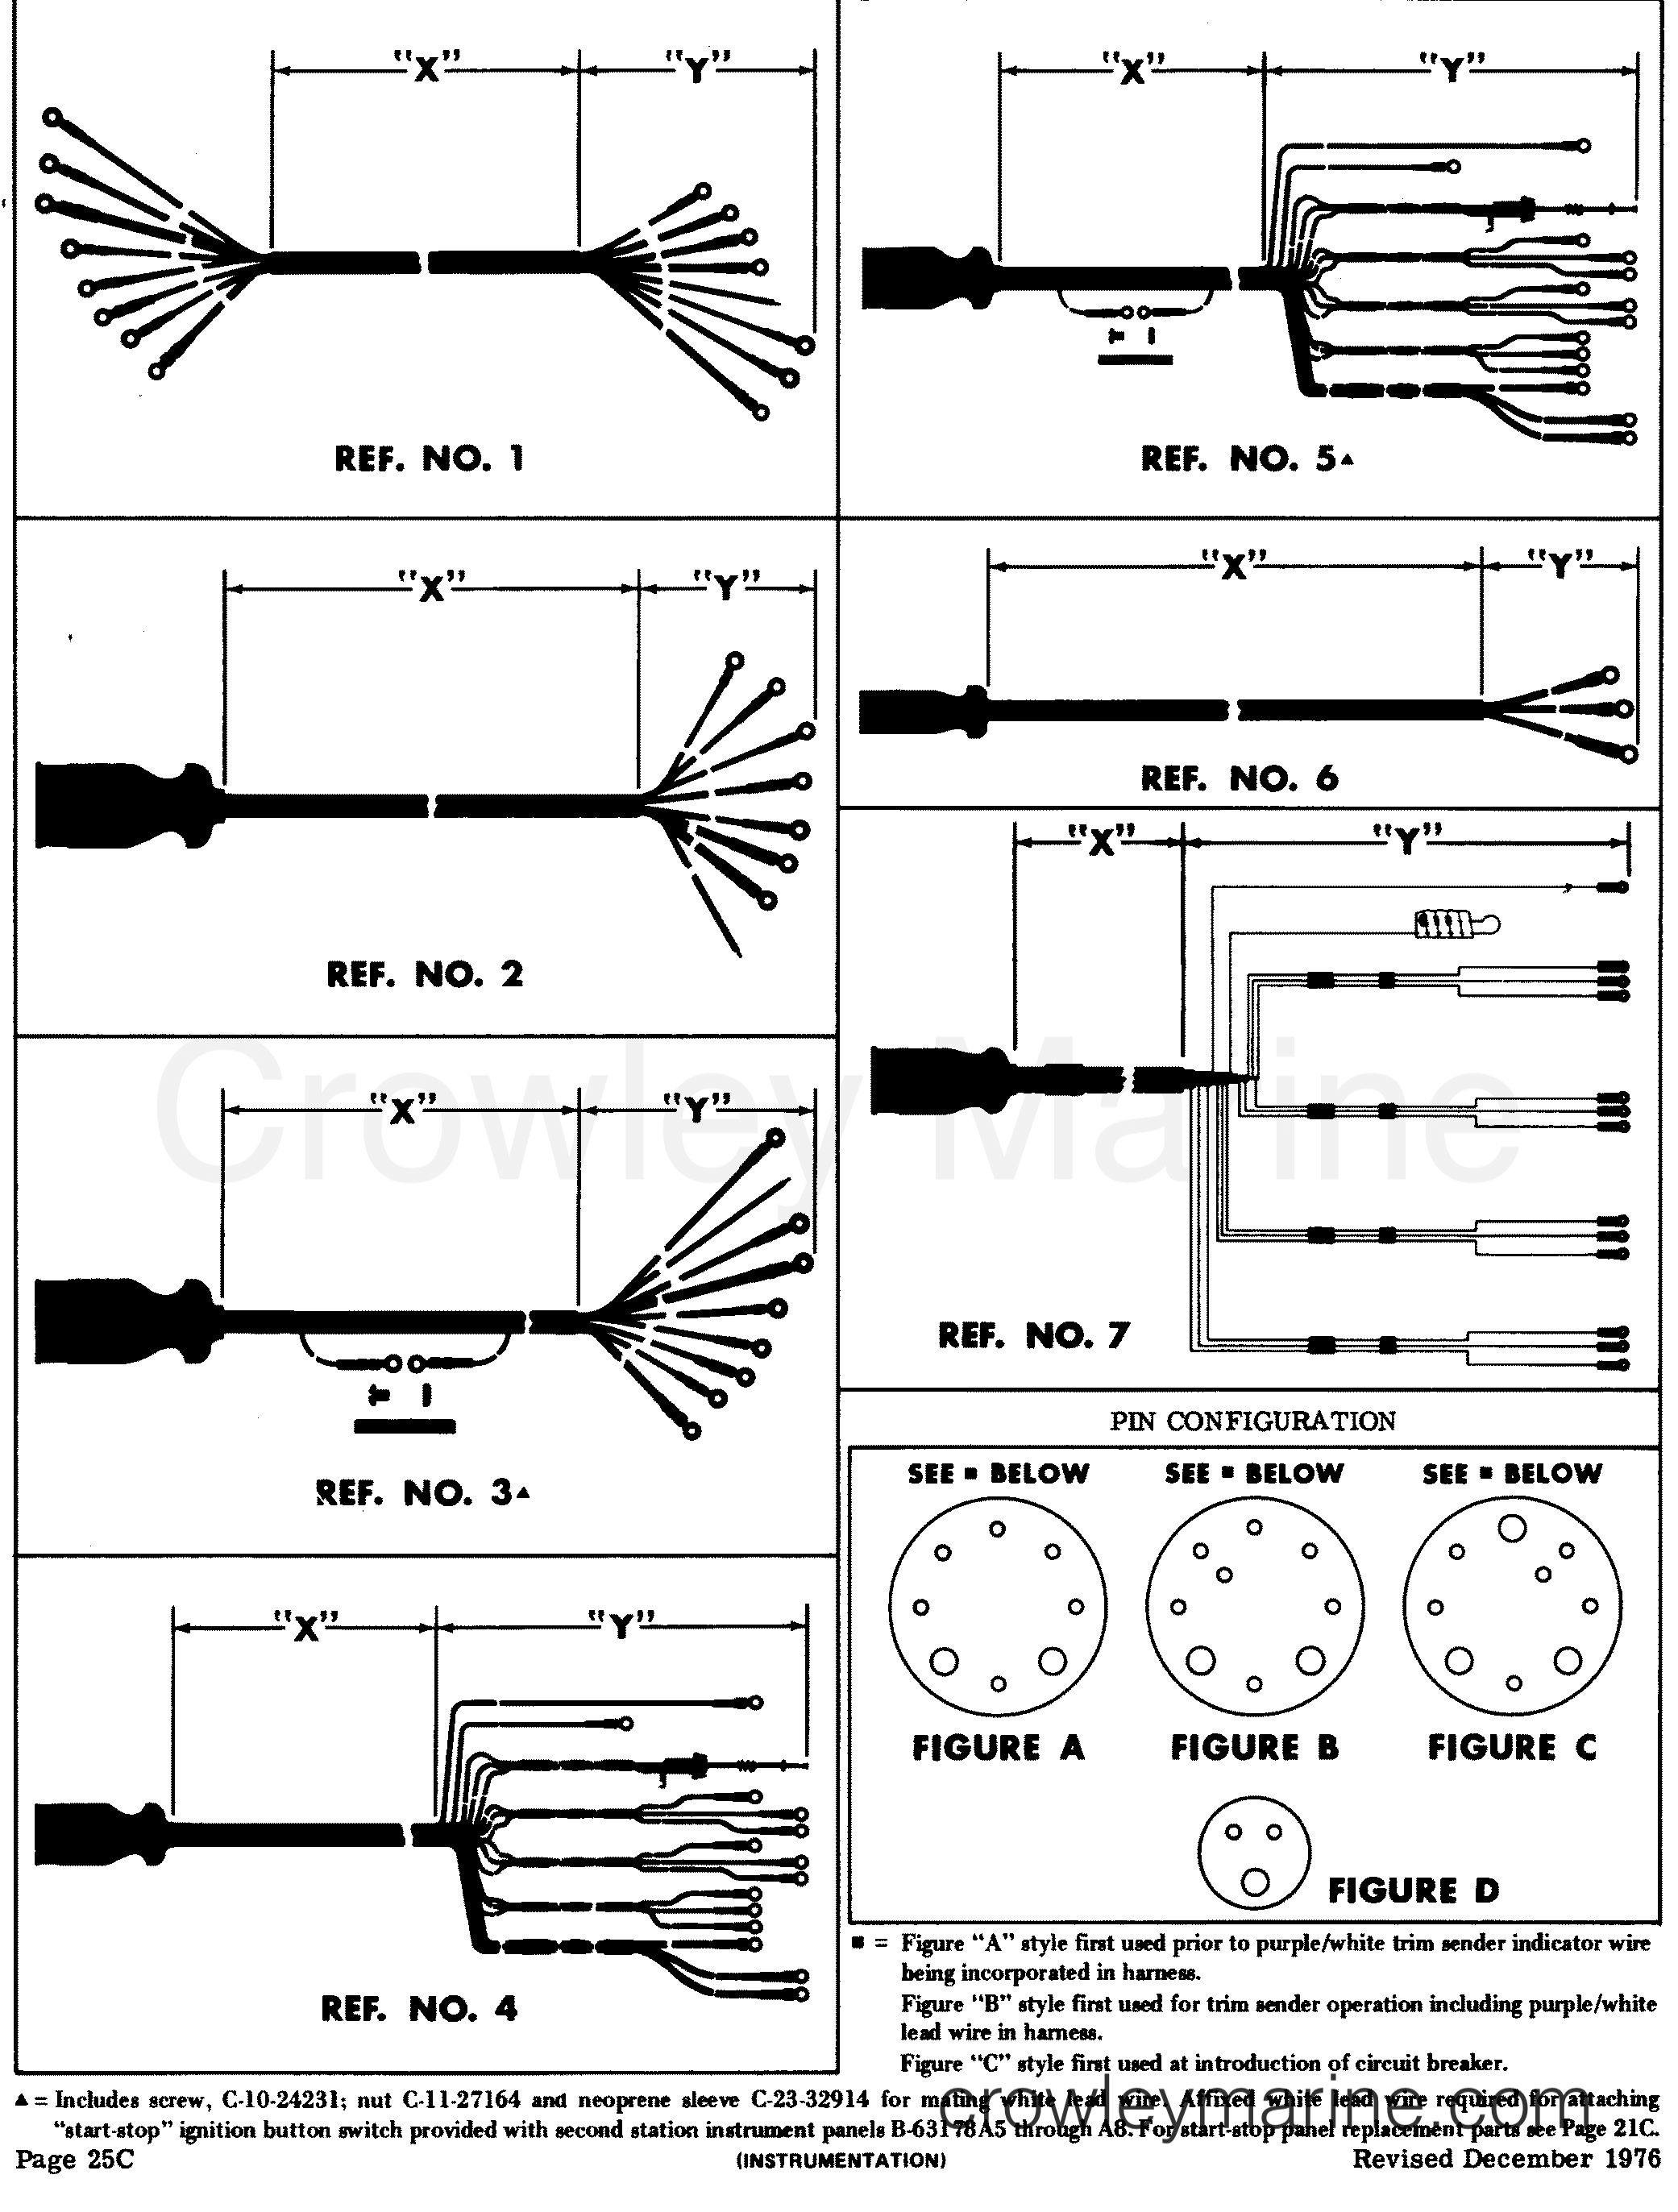 mercury 14 pin wiring harness diagram mercury instrument panel and gauge cluster harnesses various years on mercury 14 pin wiring harness diagram